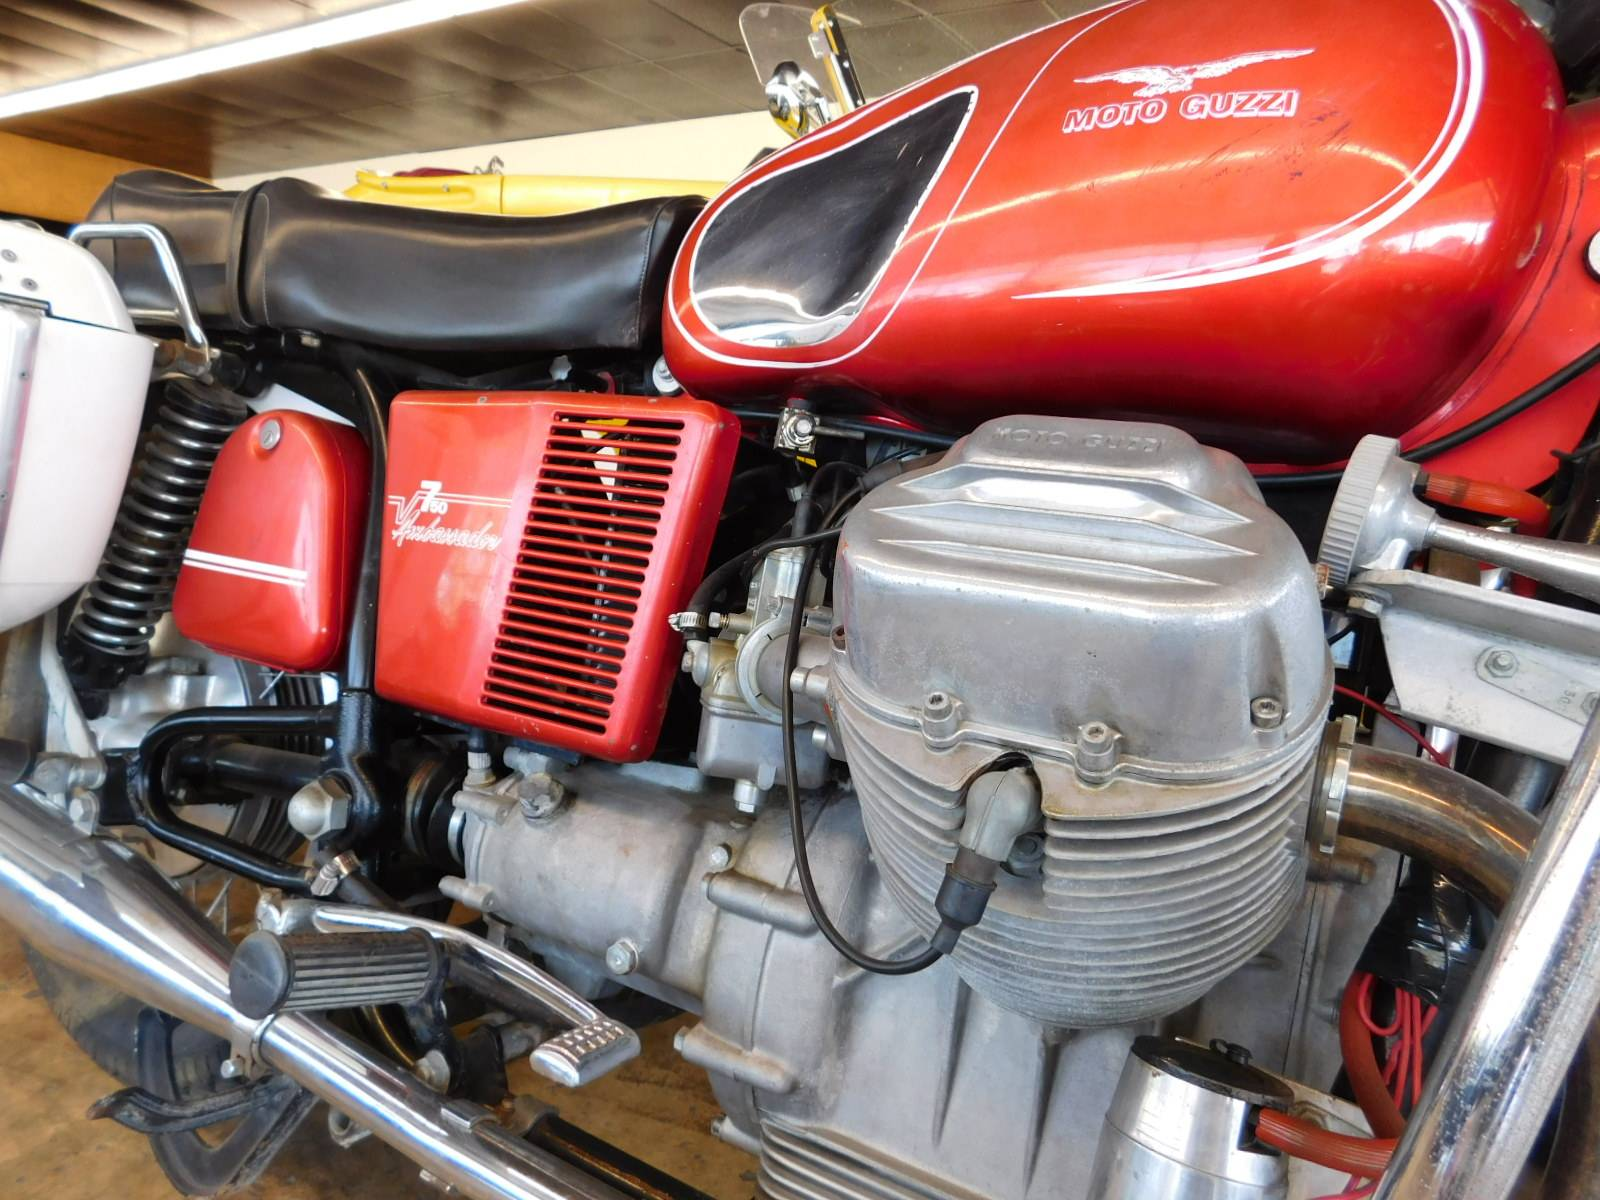 1974 Moto Guzzi Ambassador V750 in Loveland, Colorado - Photo 6